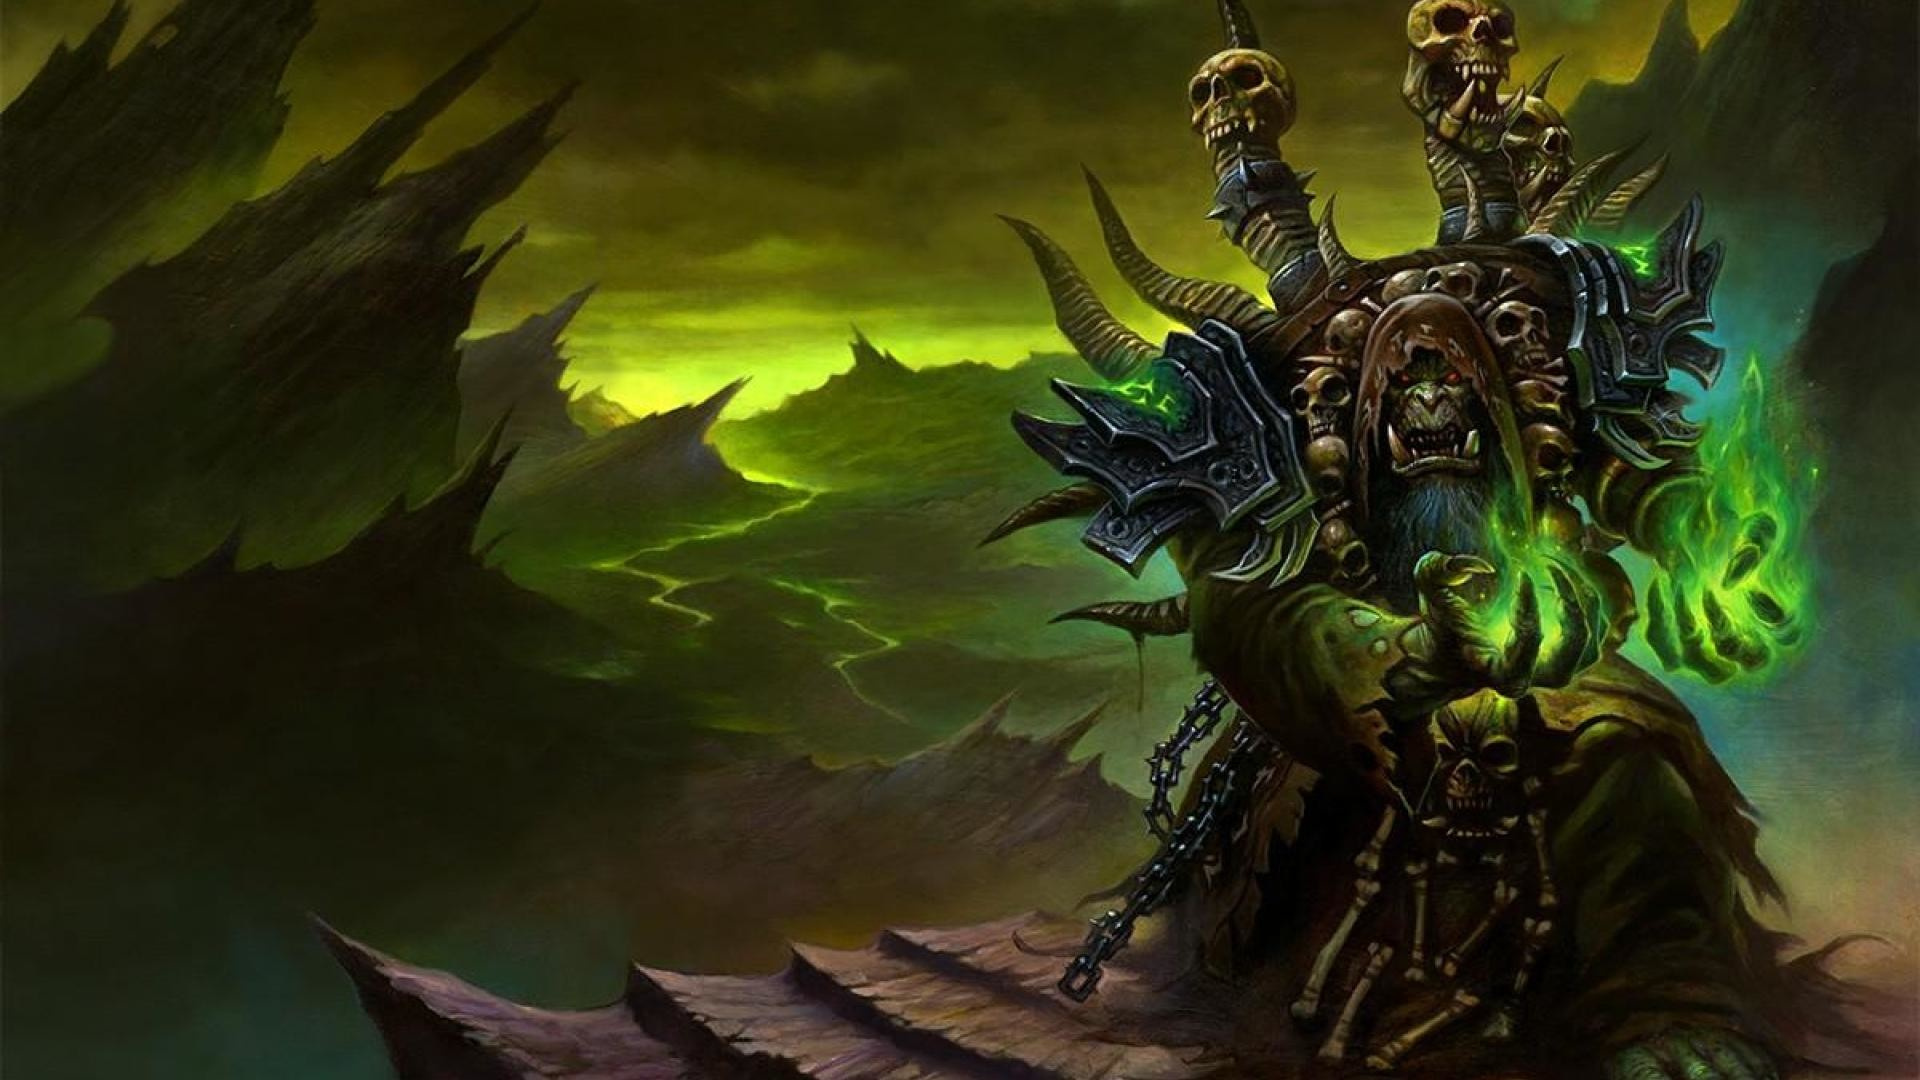 World Of Warcraft HD Wallpapers Backgrounds Wallpaper   HD Wallpapers    Pinterest   Wallpaper, Hd wallpaper and Desktop backgrounds